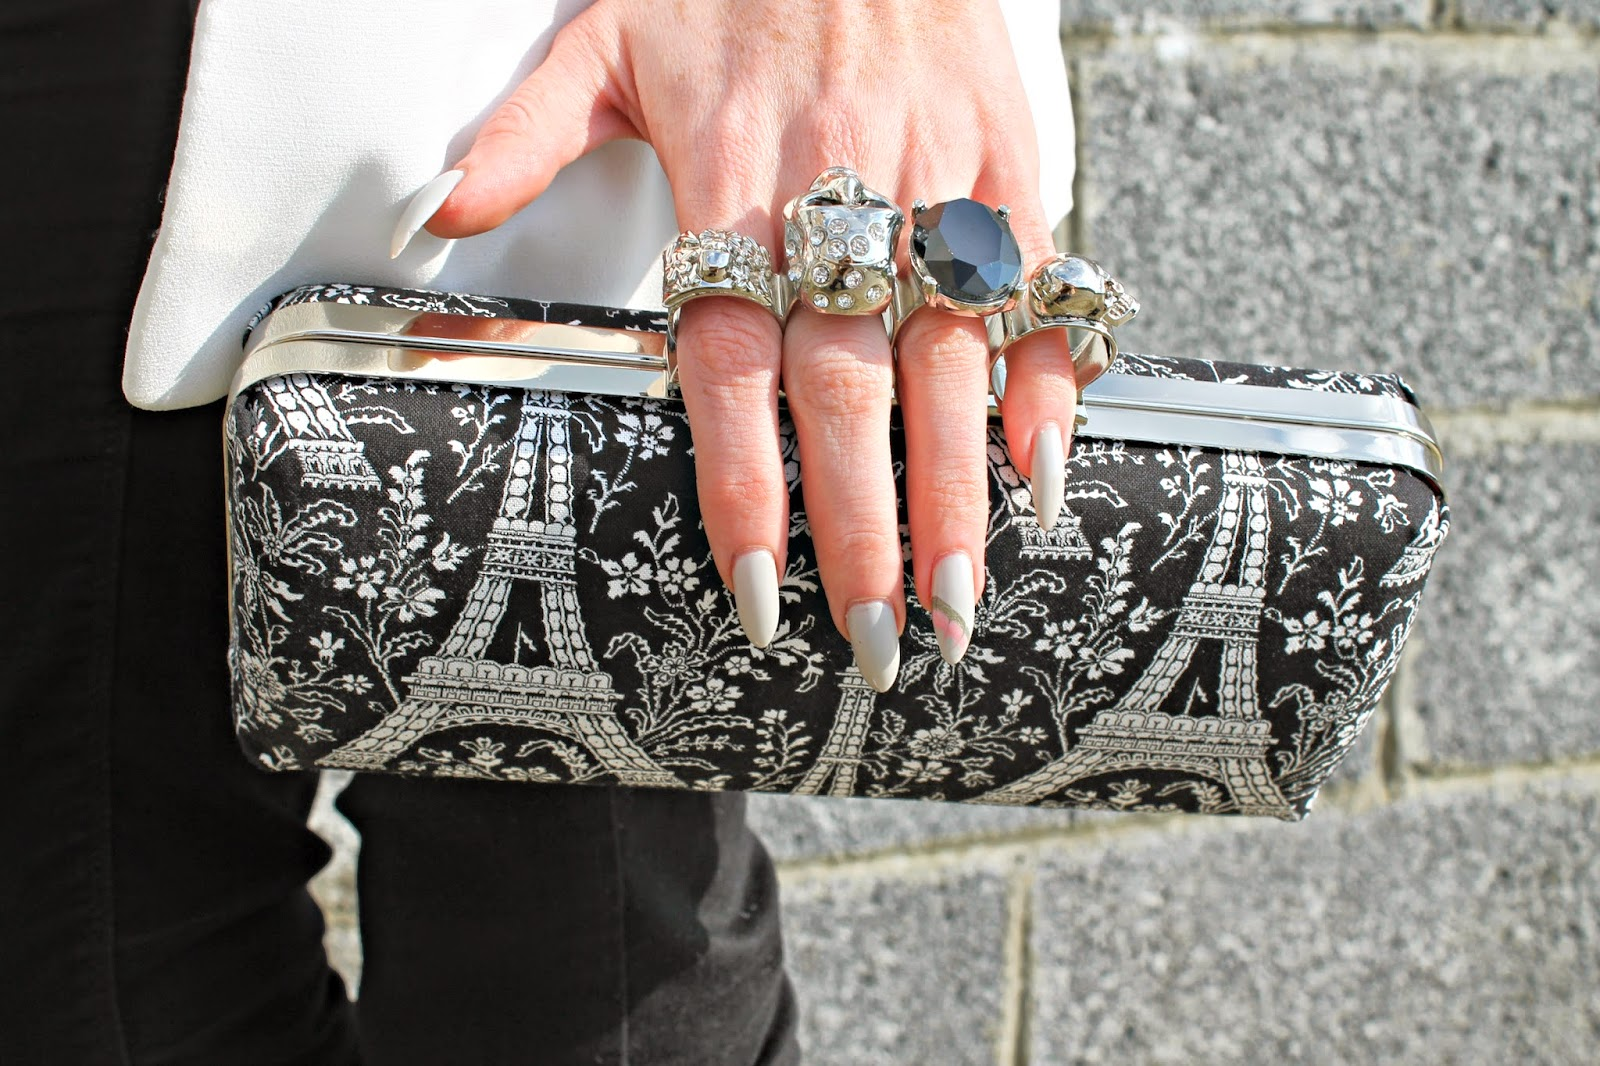 gothica clutch LP Designed 4 You blog